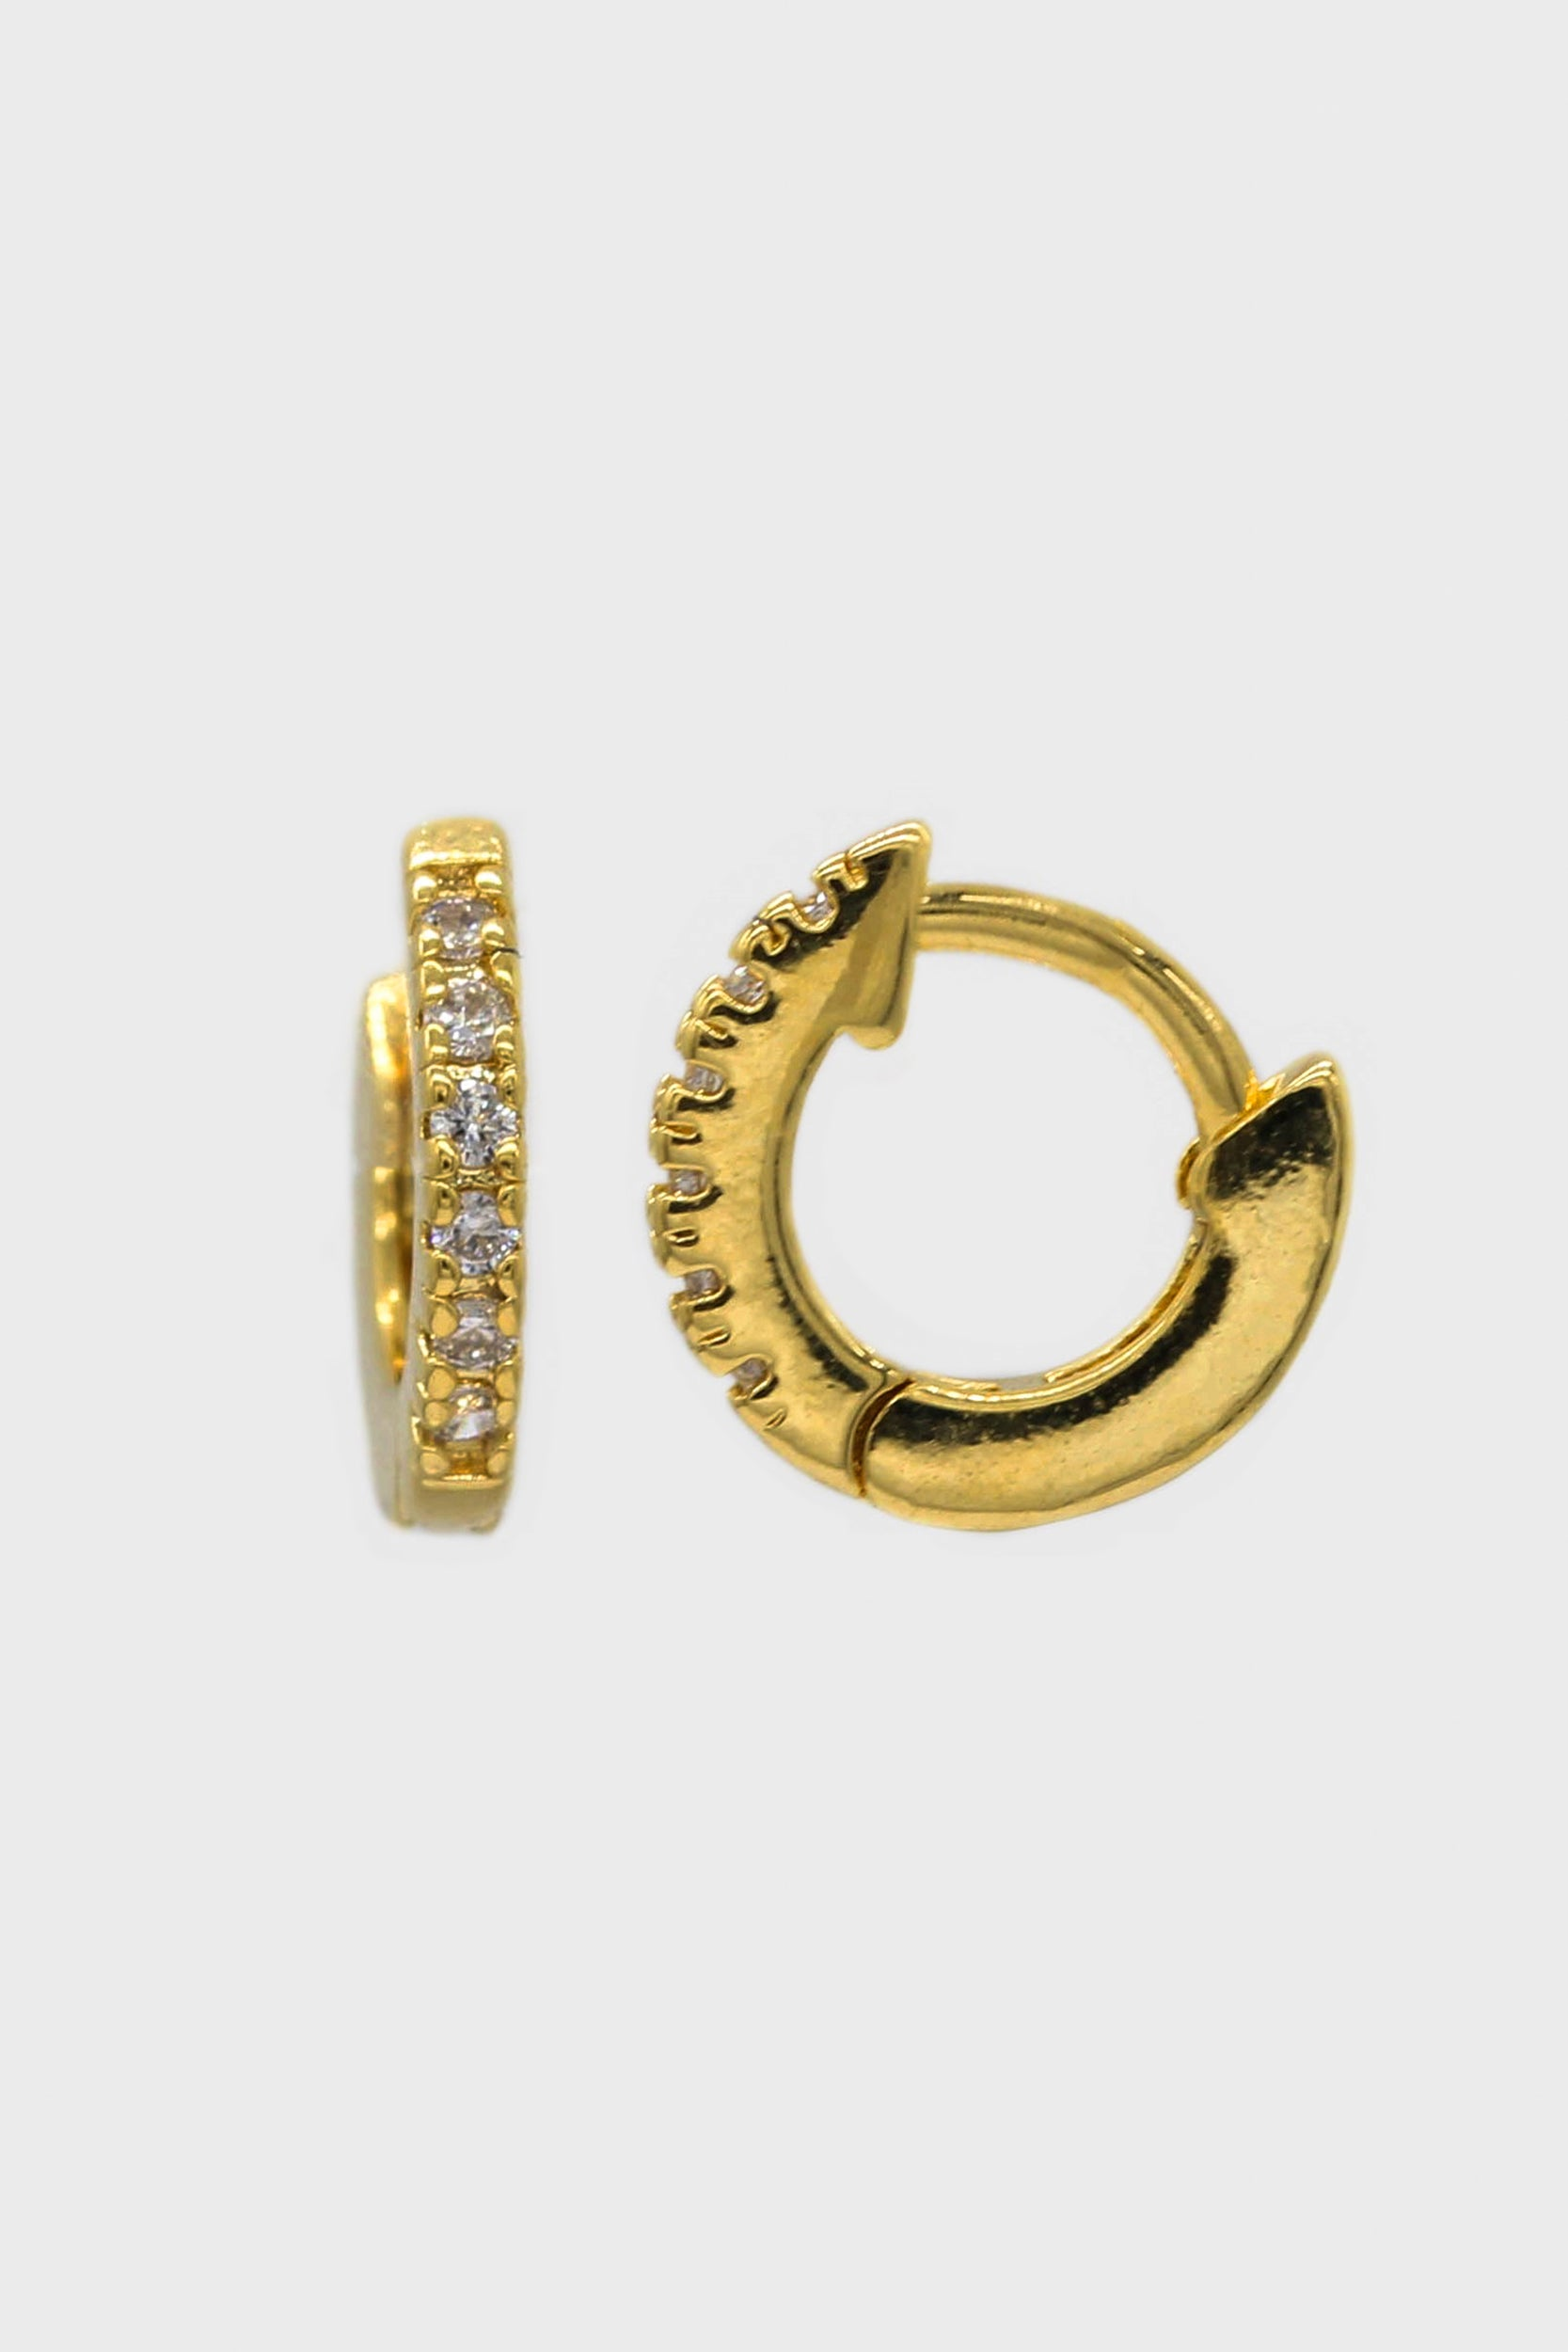 Gold simple pave huggie earrings - 5.5mm1